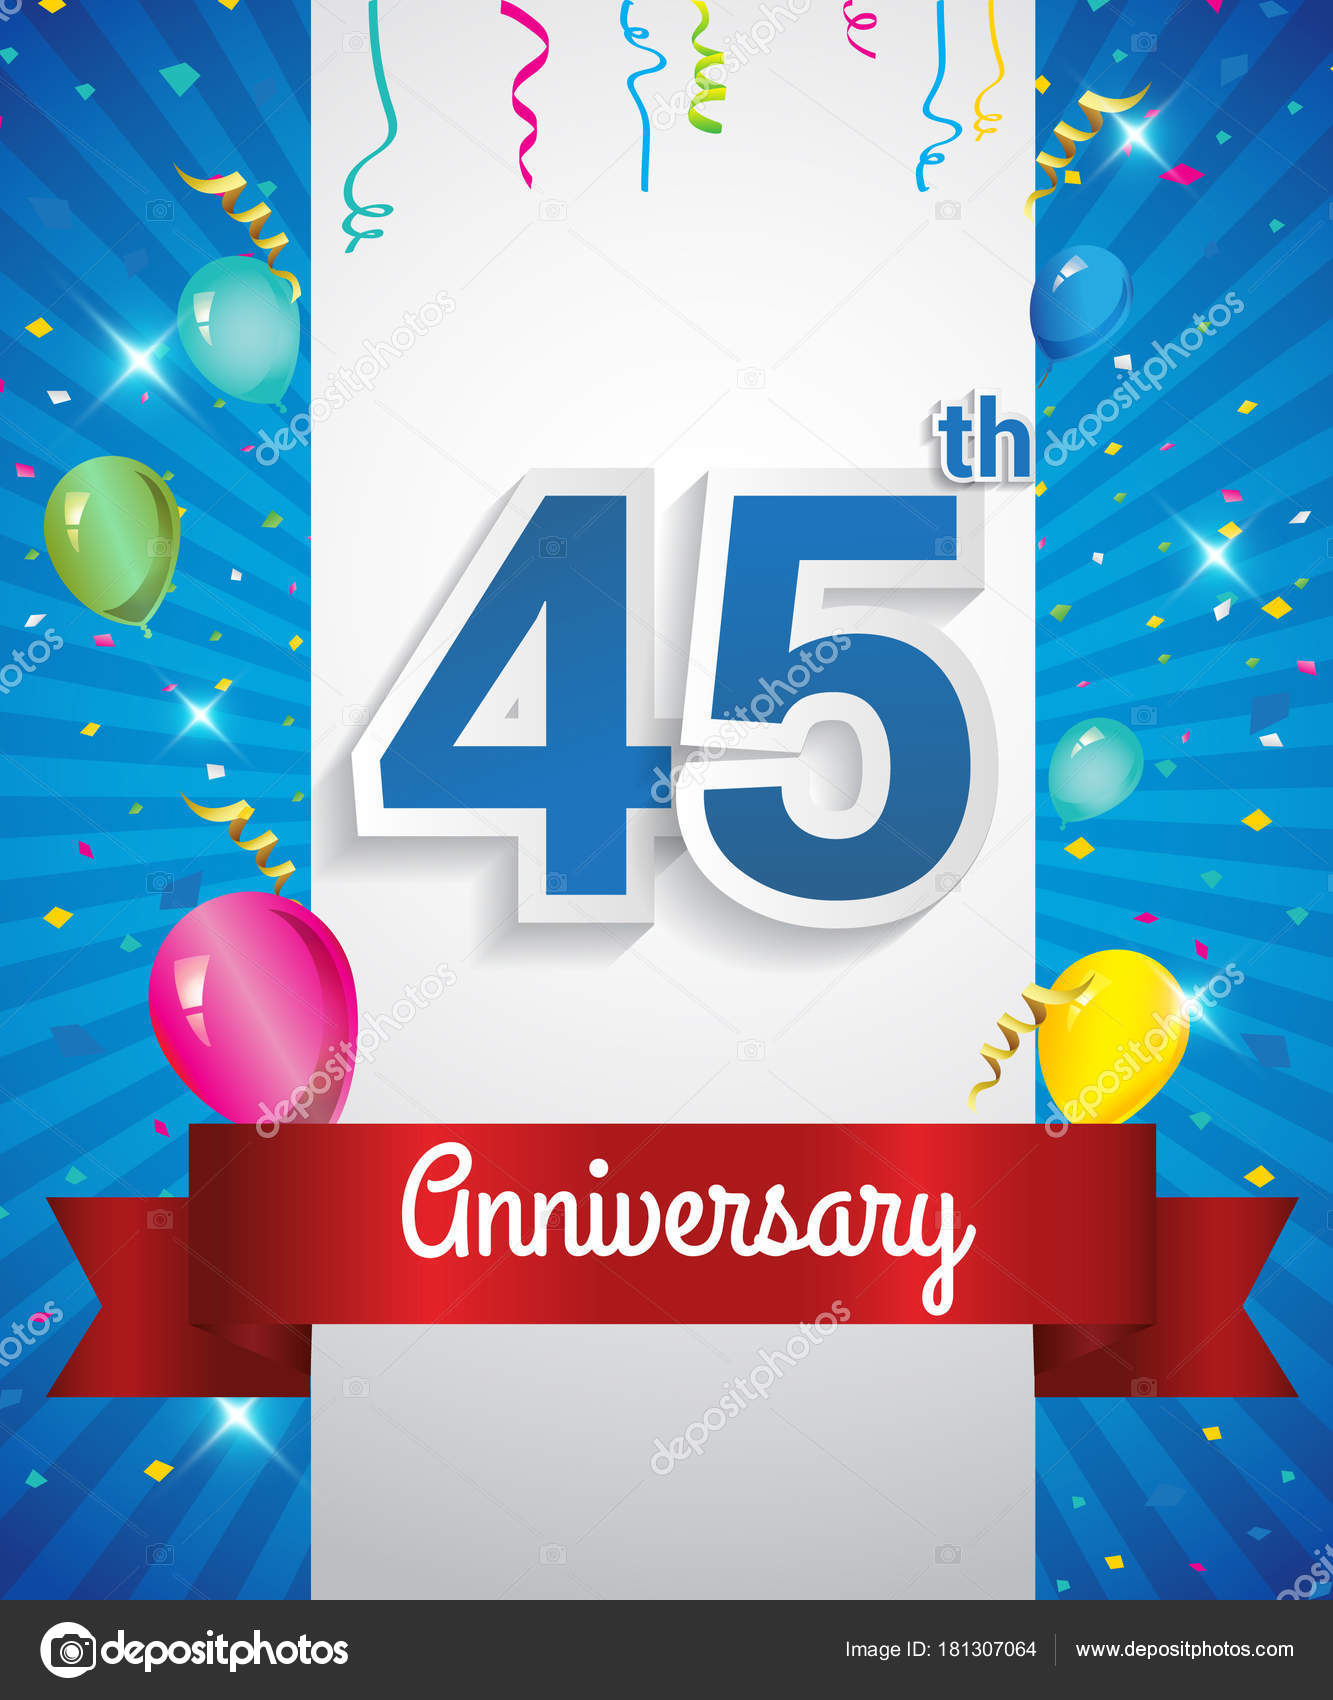 Celebrating 45Th Anniversary Logo Confetti Balloons Red Ribbon Colorful Vector Stock